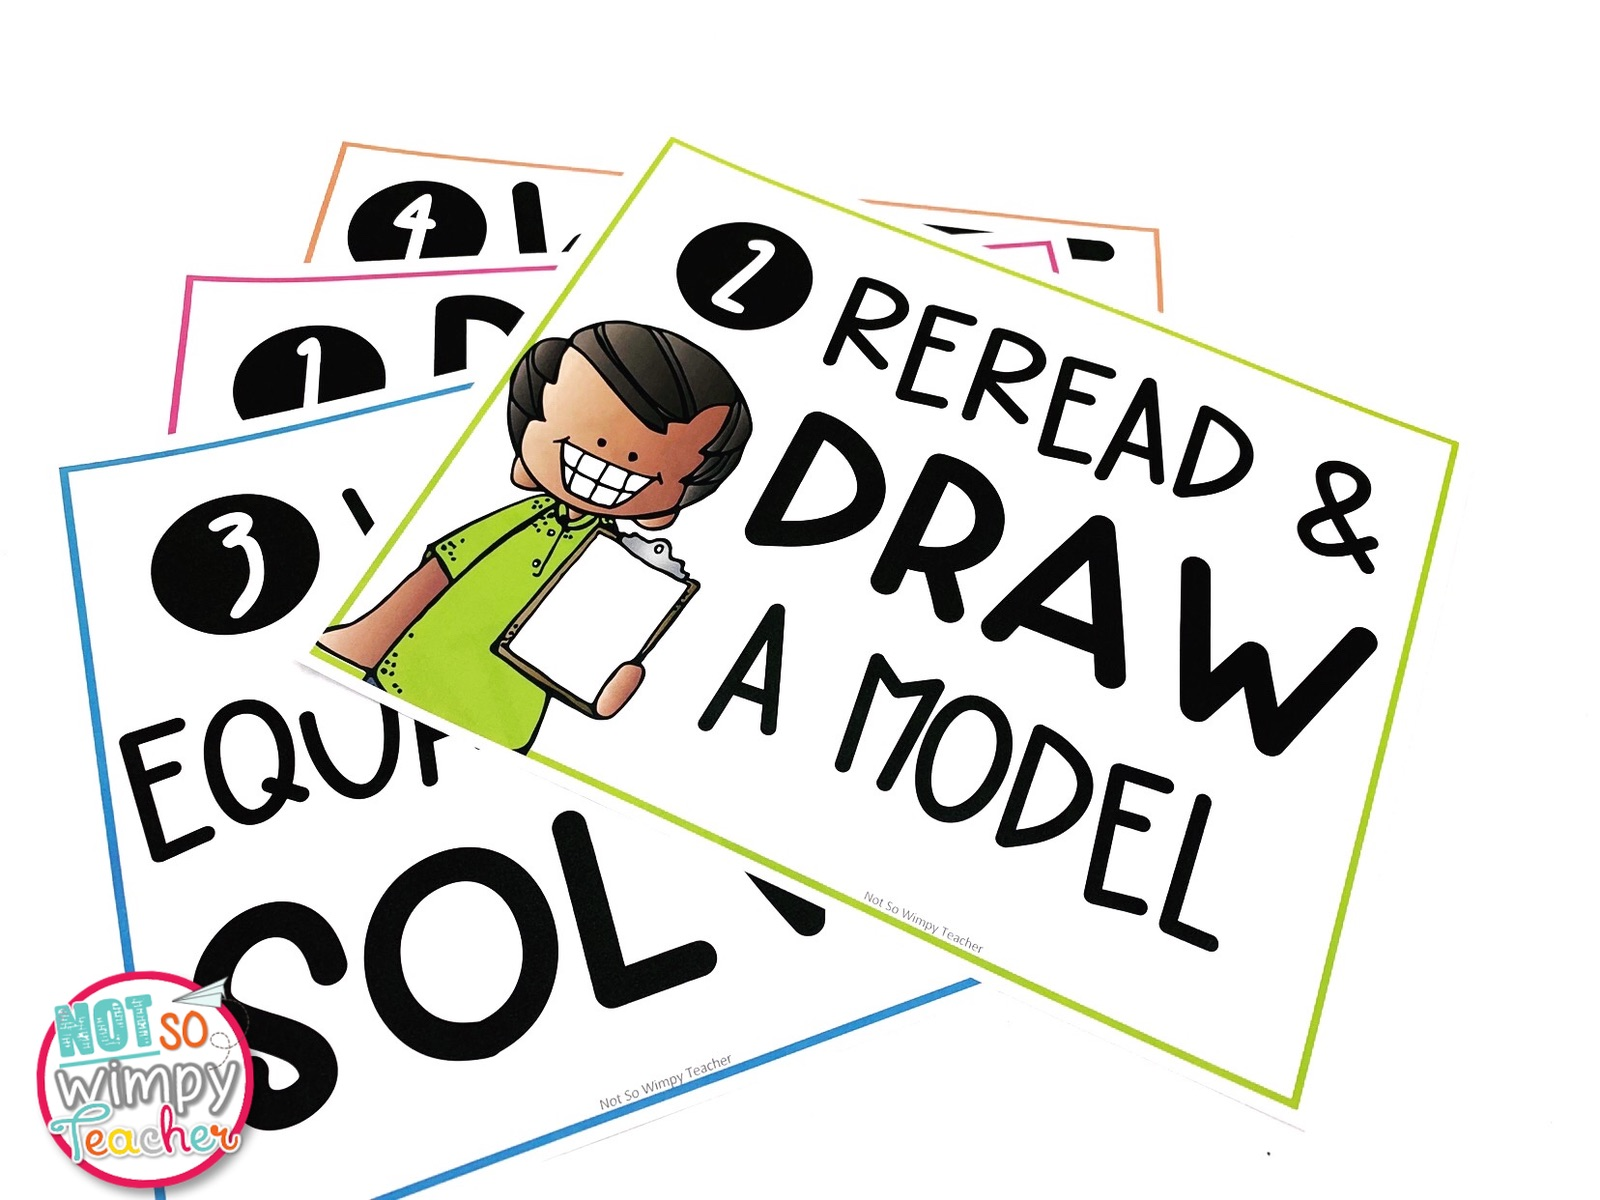 4 Math Problem Solving Posters featuring step 2 Reread and Draw a Model